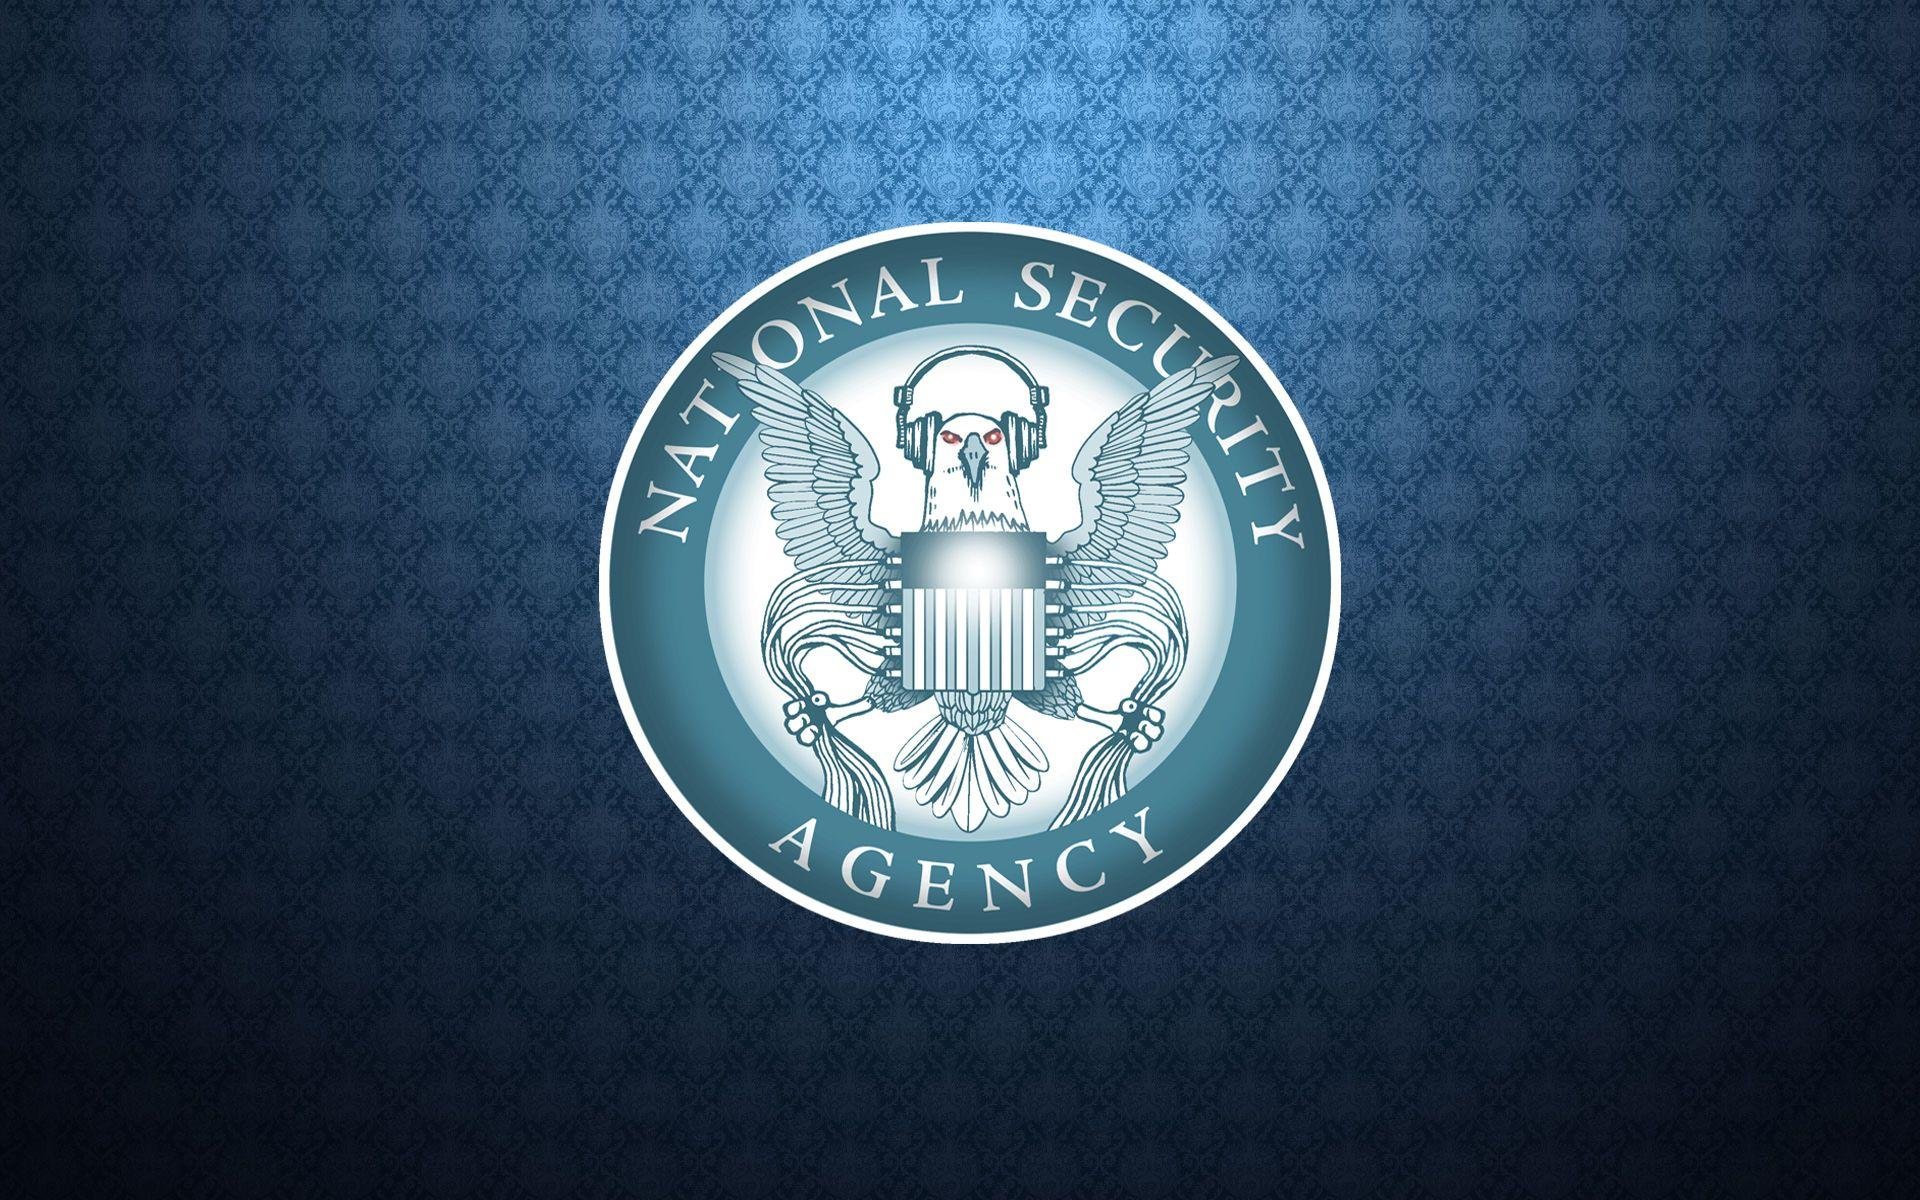 National security agency wallpapers wallpaper cave - Surveillance wallpaper ...